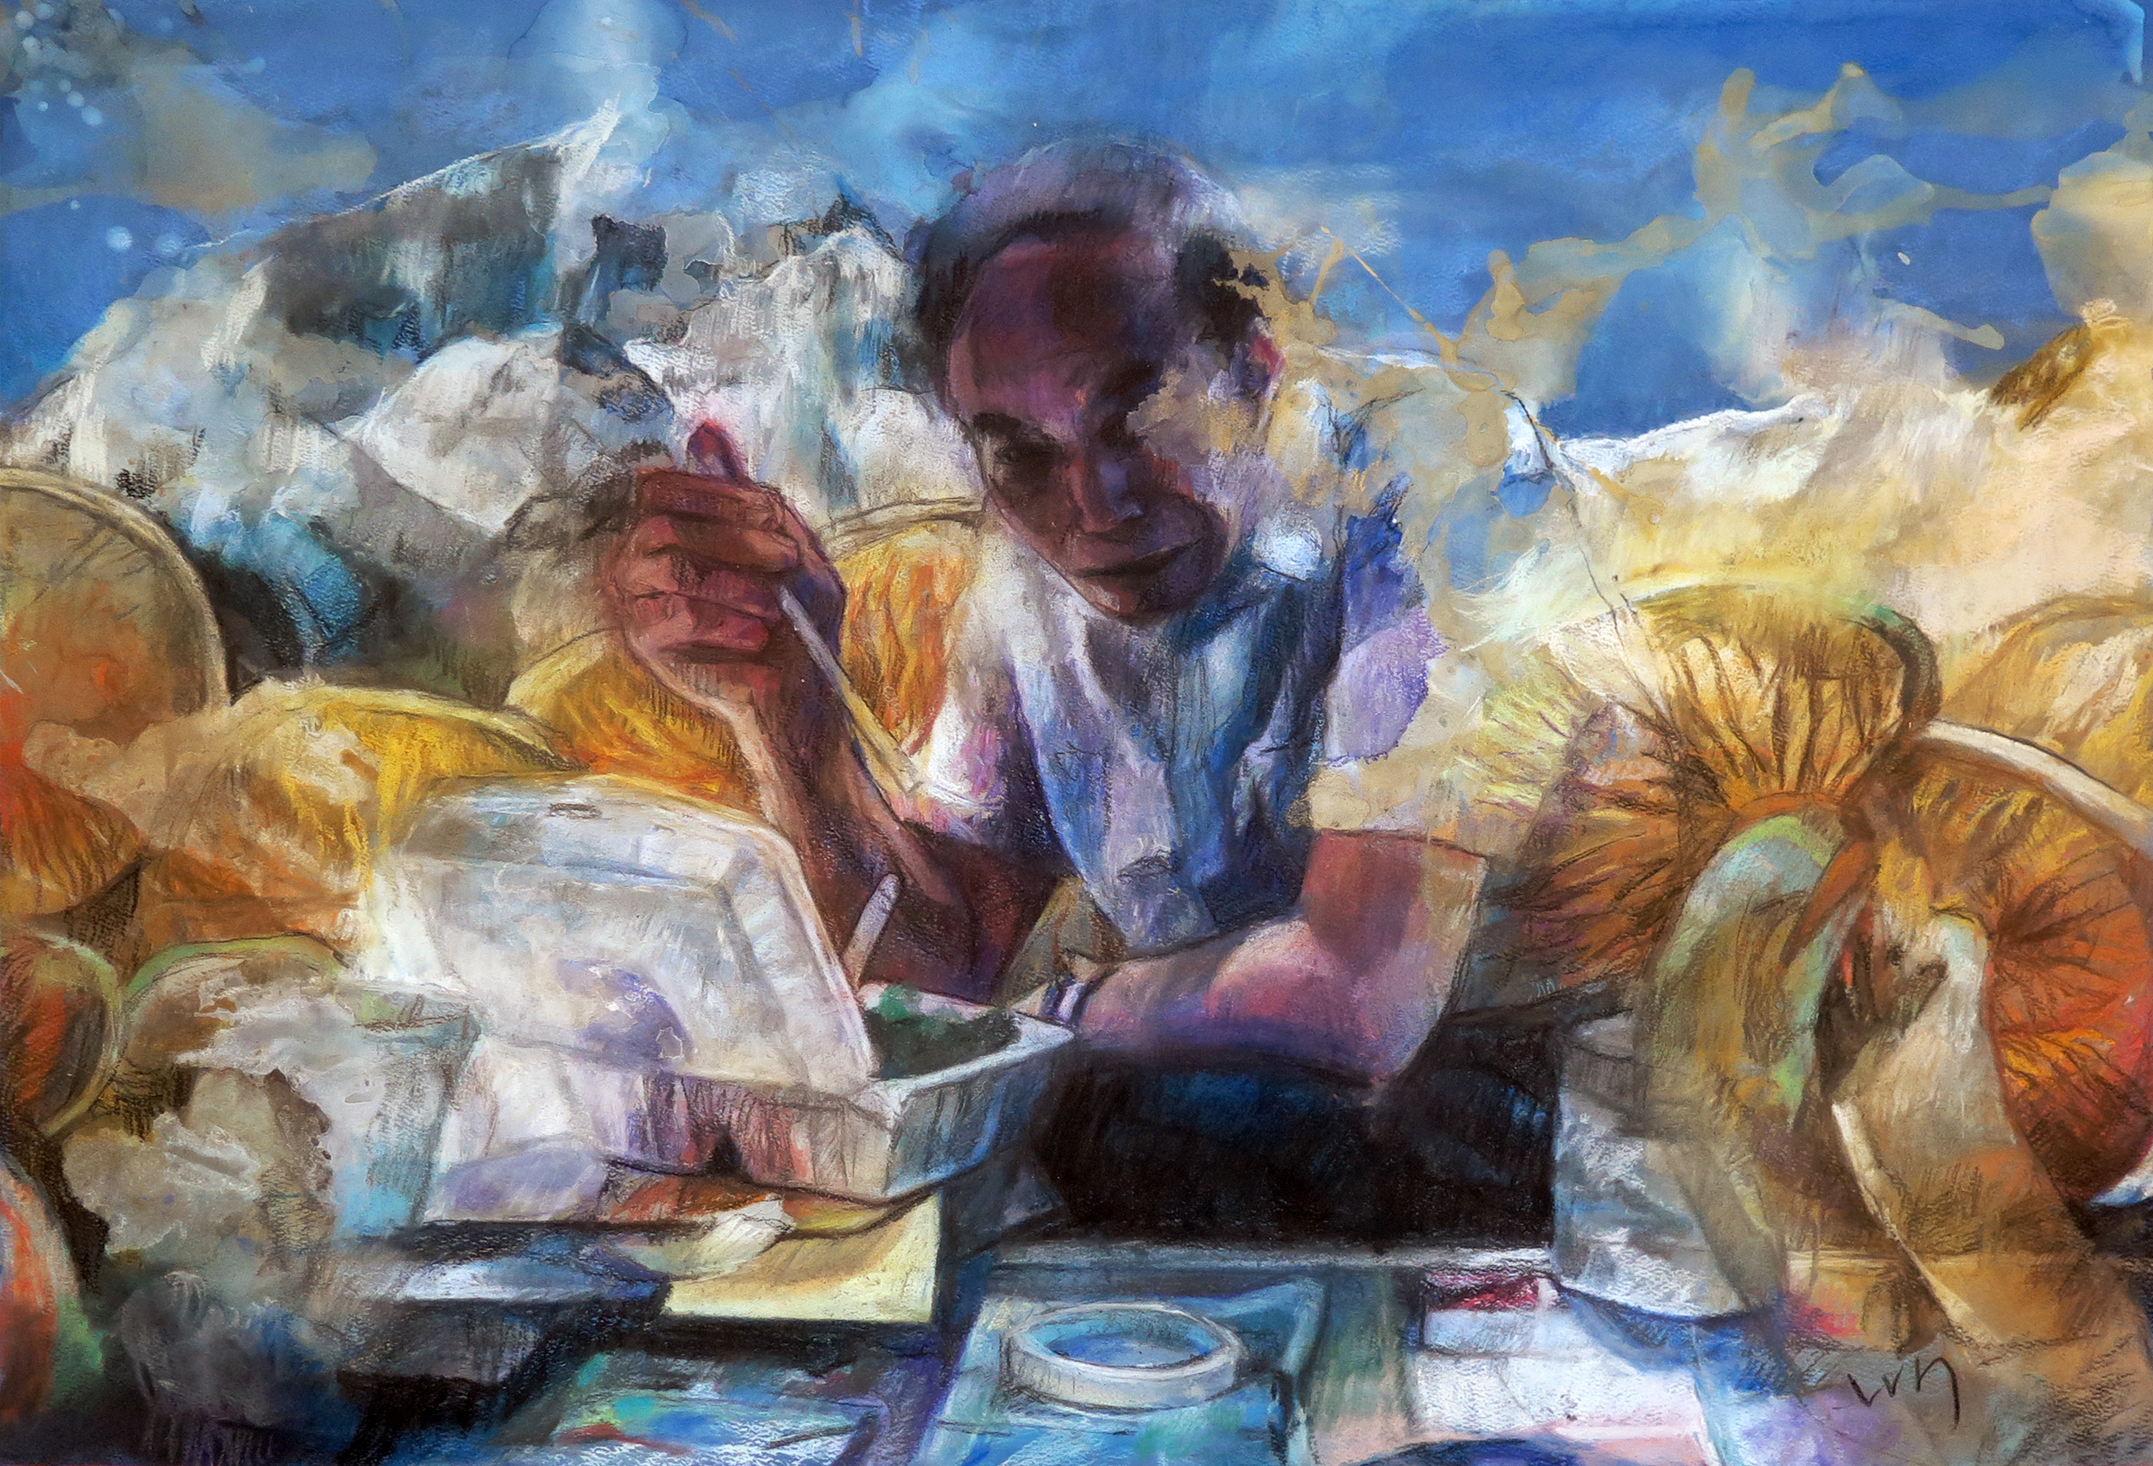 """""""I know a great desk where we can have lunch today"""" Pastel/Watercolor on paper 76 x 51 cm (unframed) / 77 x 55 cm (framed) 2015"""